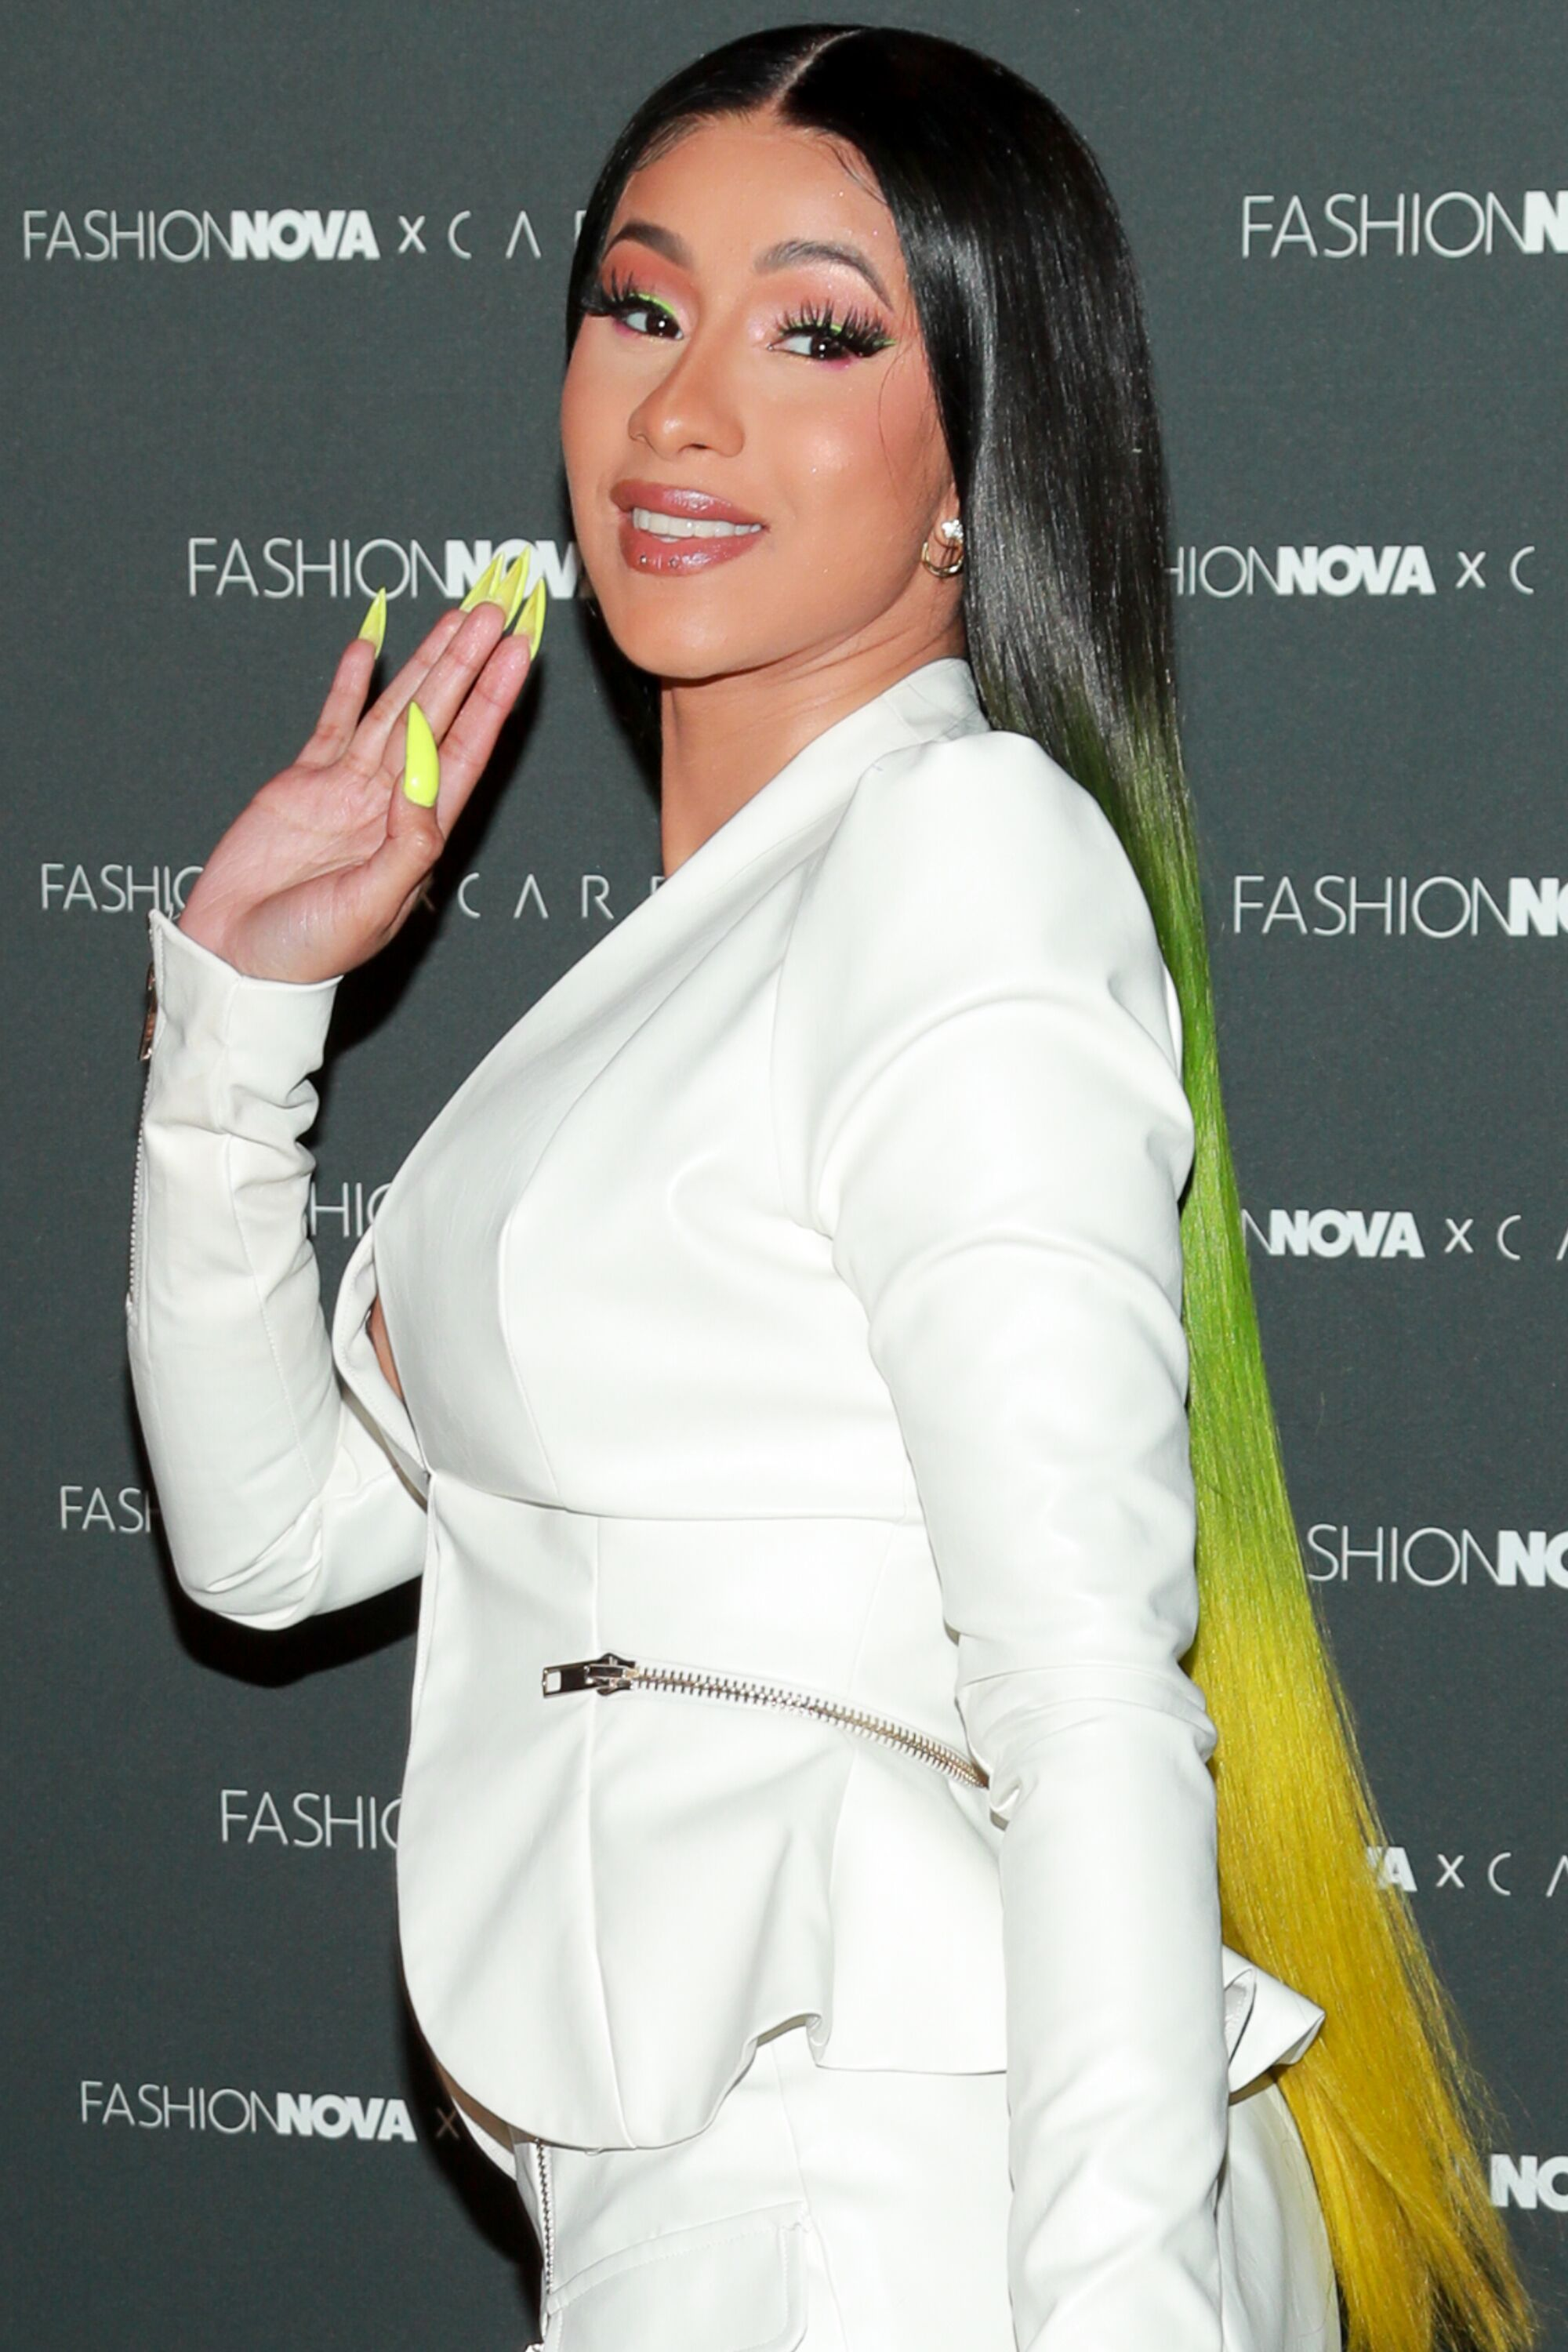 Cardi B attends the Fashion Nova x Cardi B Collection launch party at Hollywood Palladiumon May 08, 2019.   Source: Getty Images